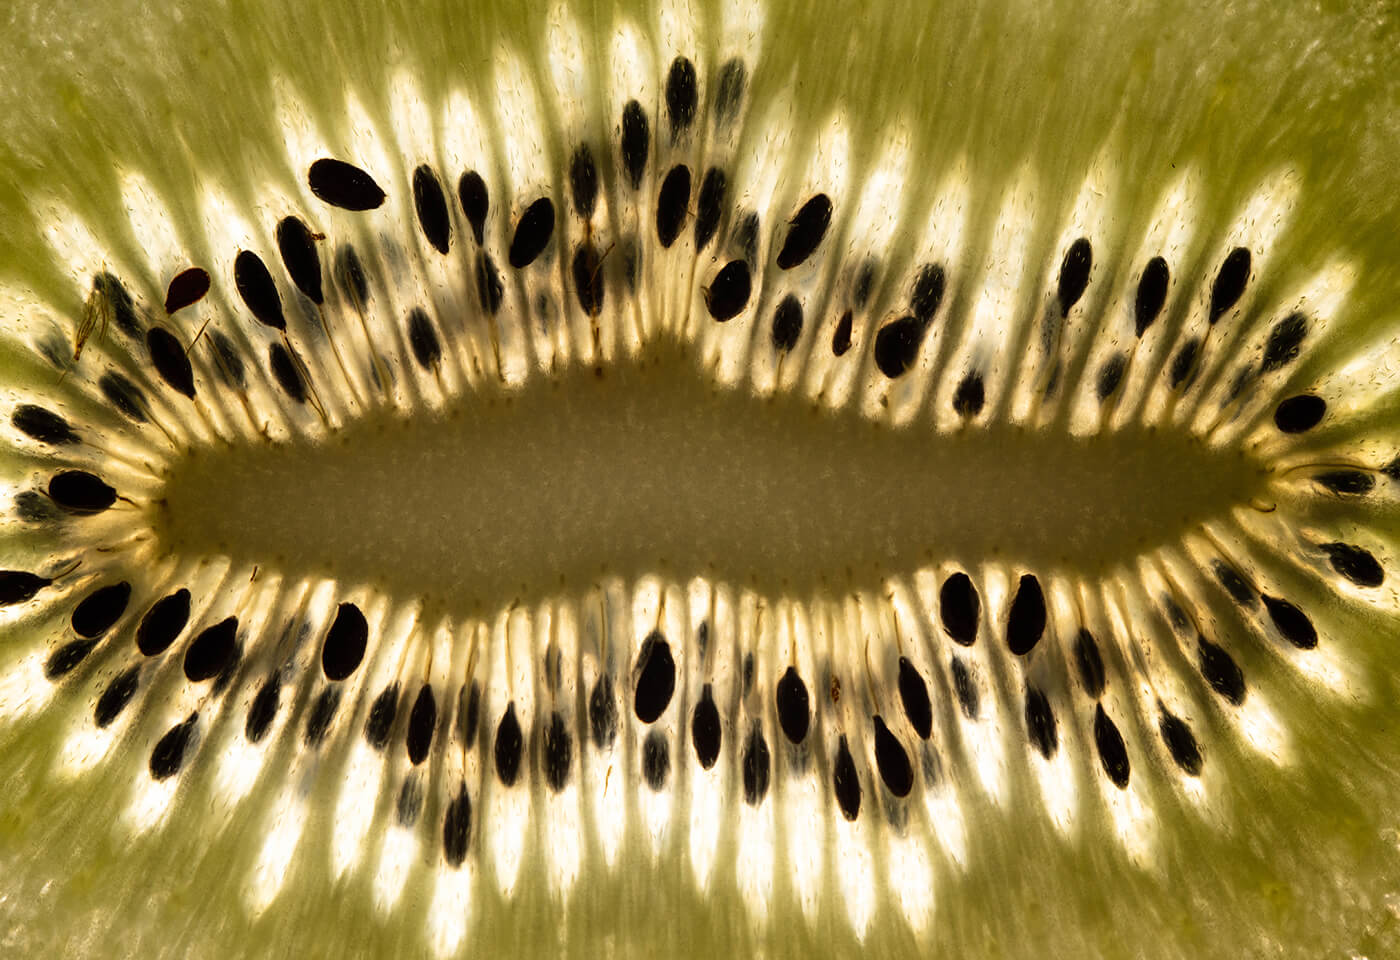 Macro image of a kiwi fruit